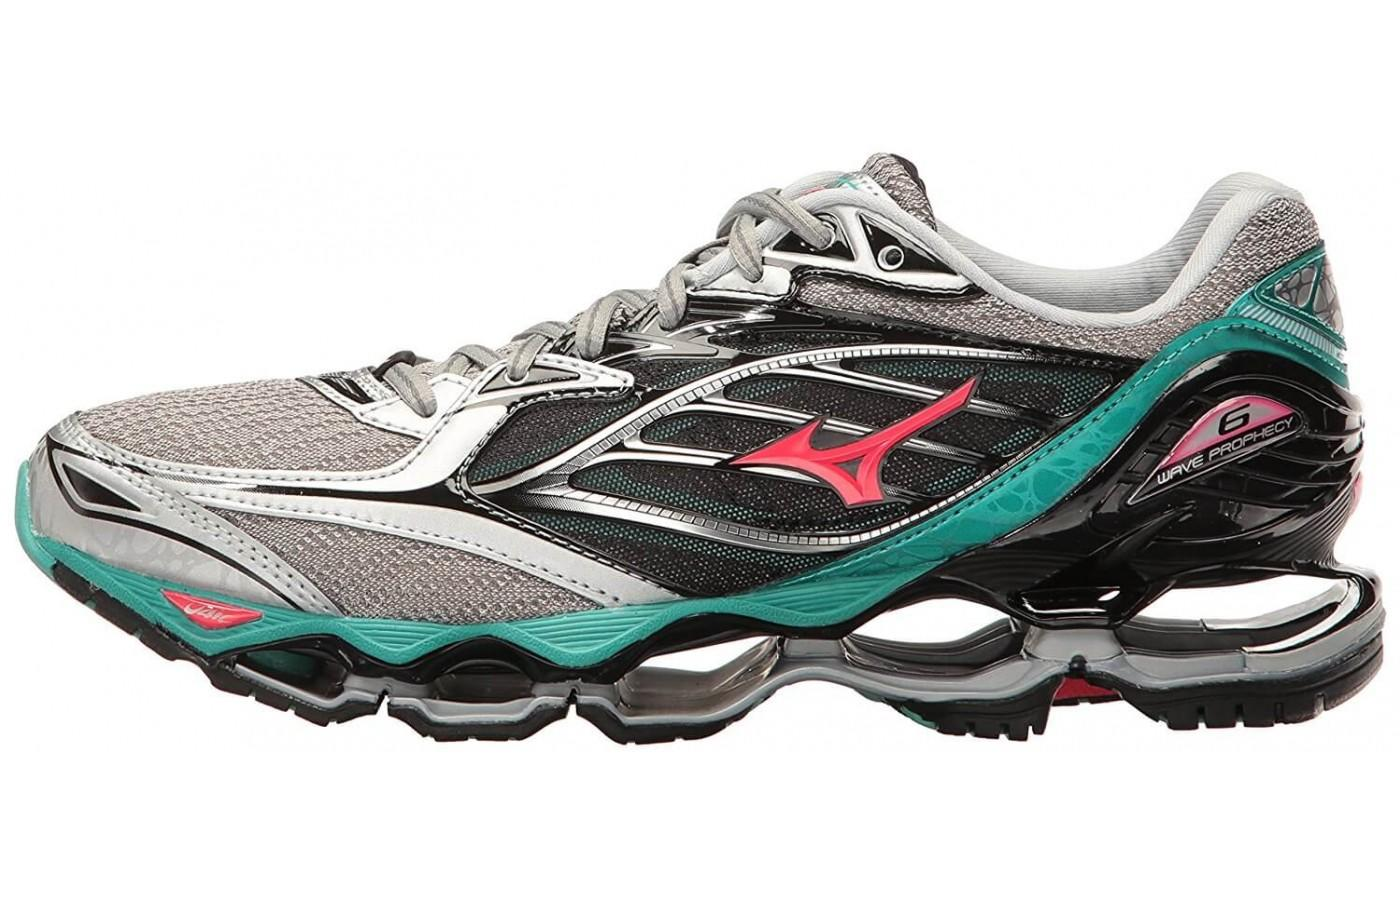 Most liked the eye catching design on the Mizuno Wave Prophecy 6.